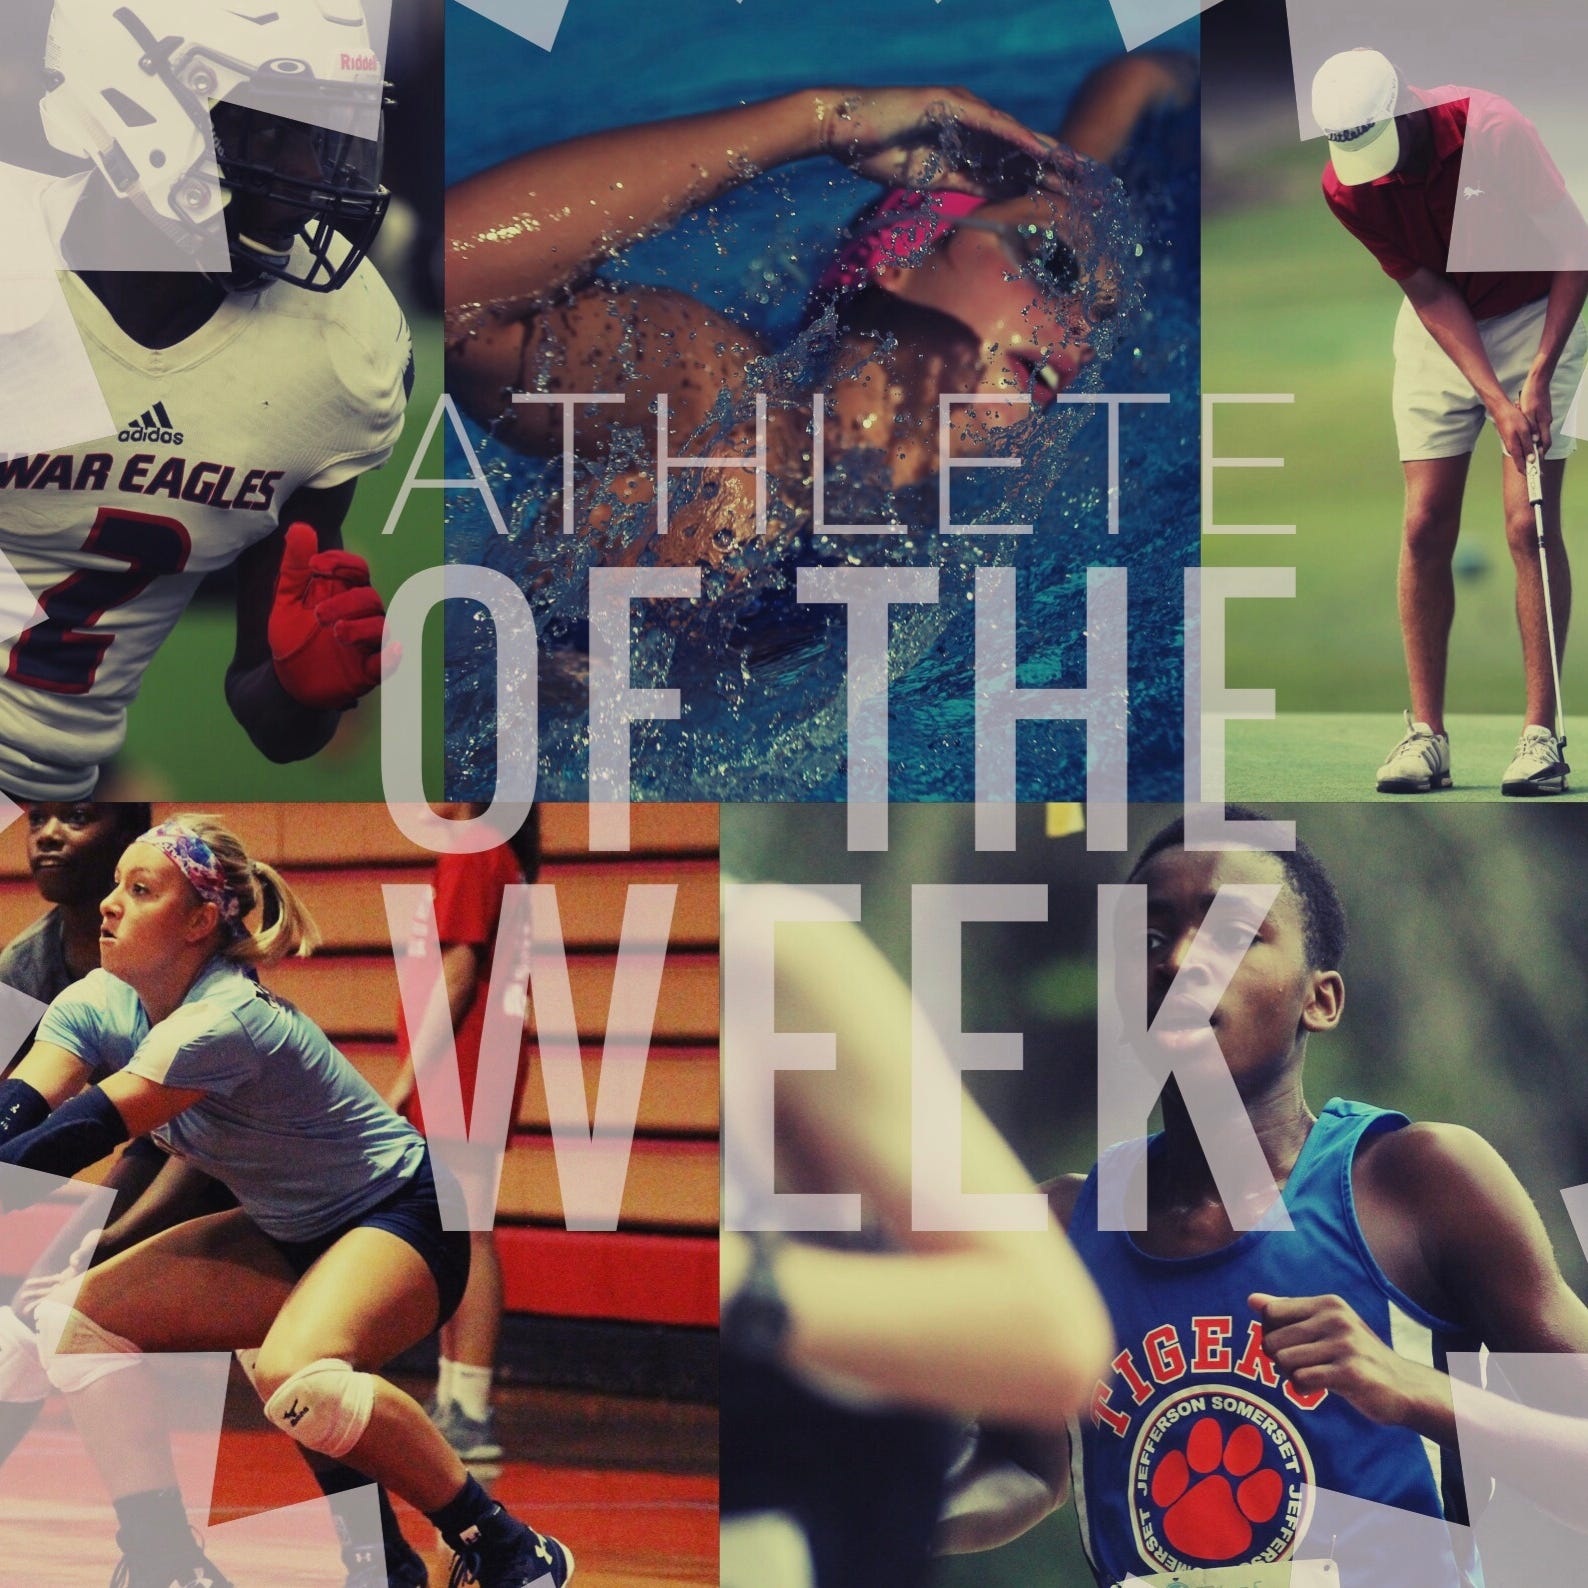 VOTE: Athlete of the Week for Fall, Week 9 (Oct. 15-20, 2018)